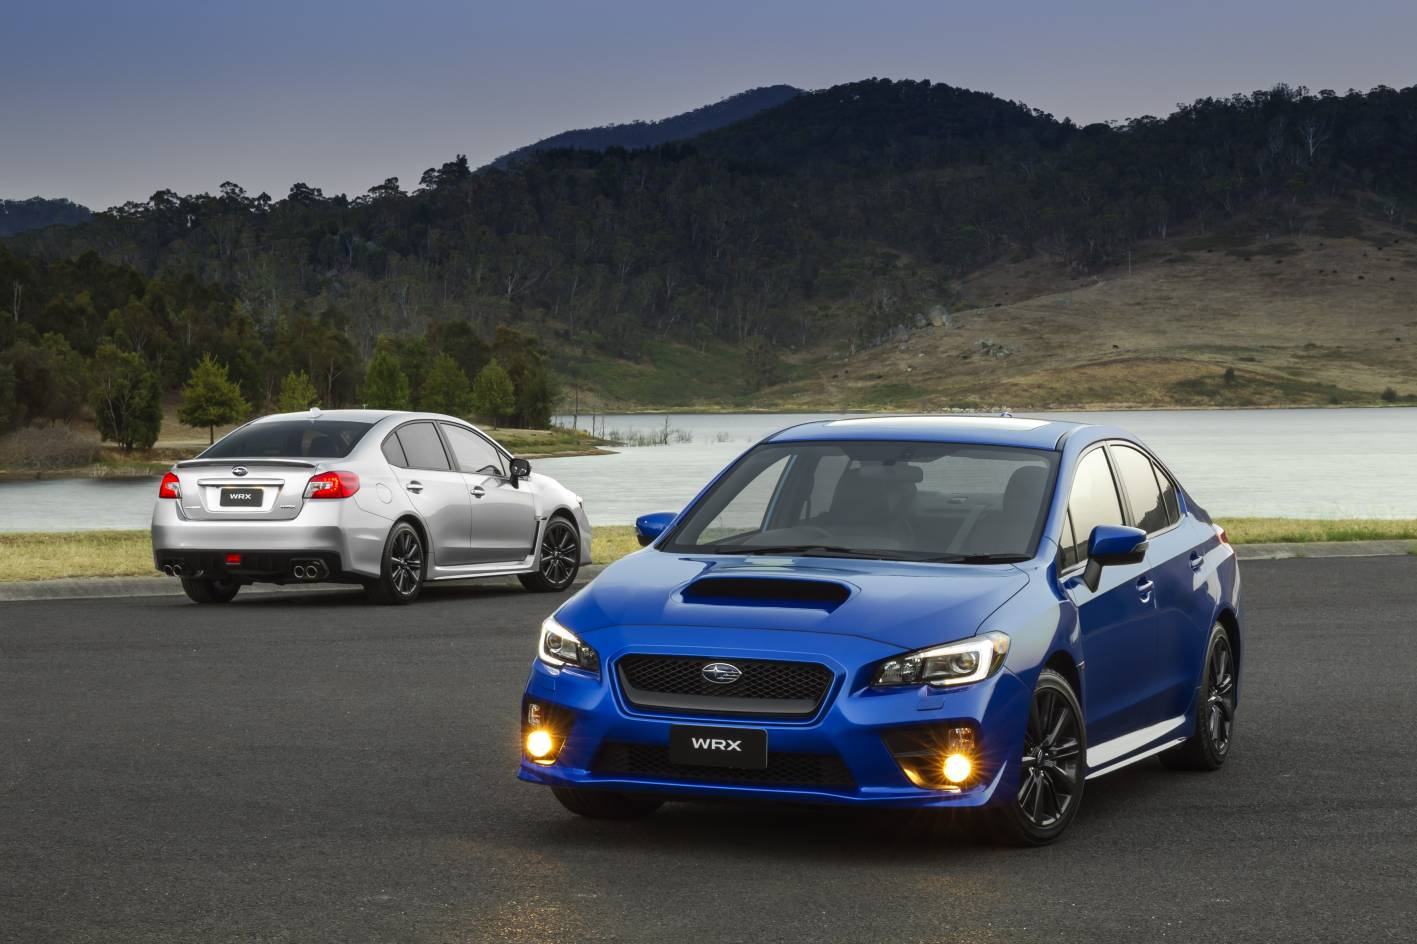 2015 Subaru WRX on sale in Australia from $38,990